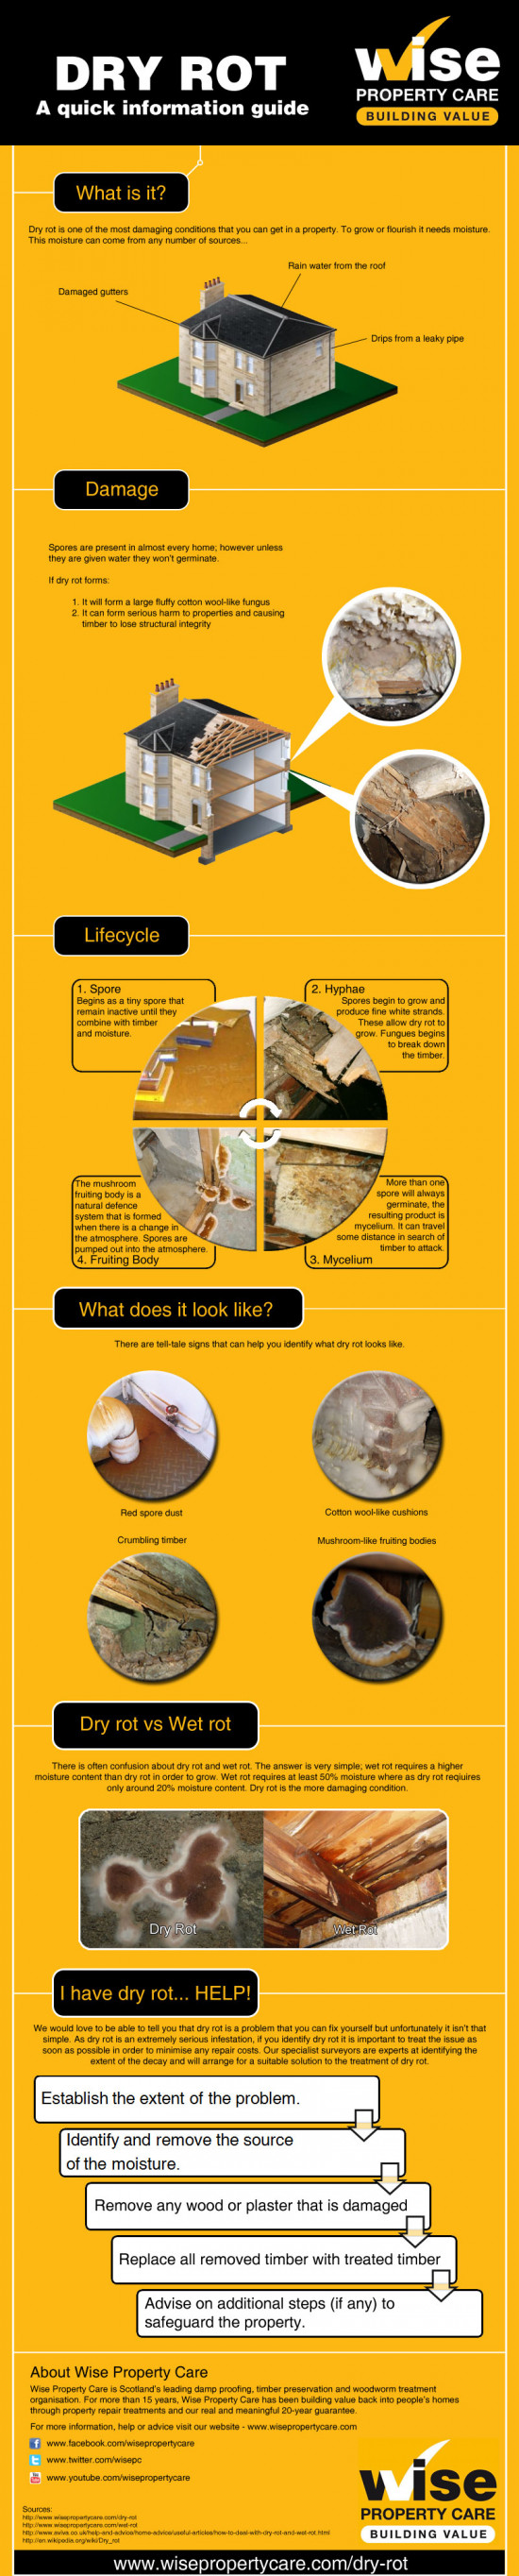 A simple guide to dry rot